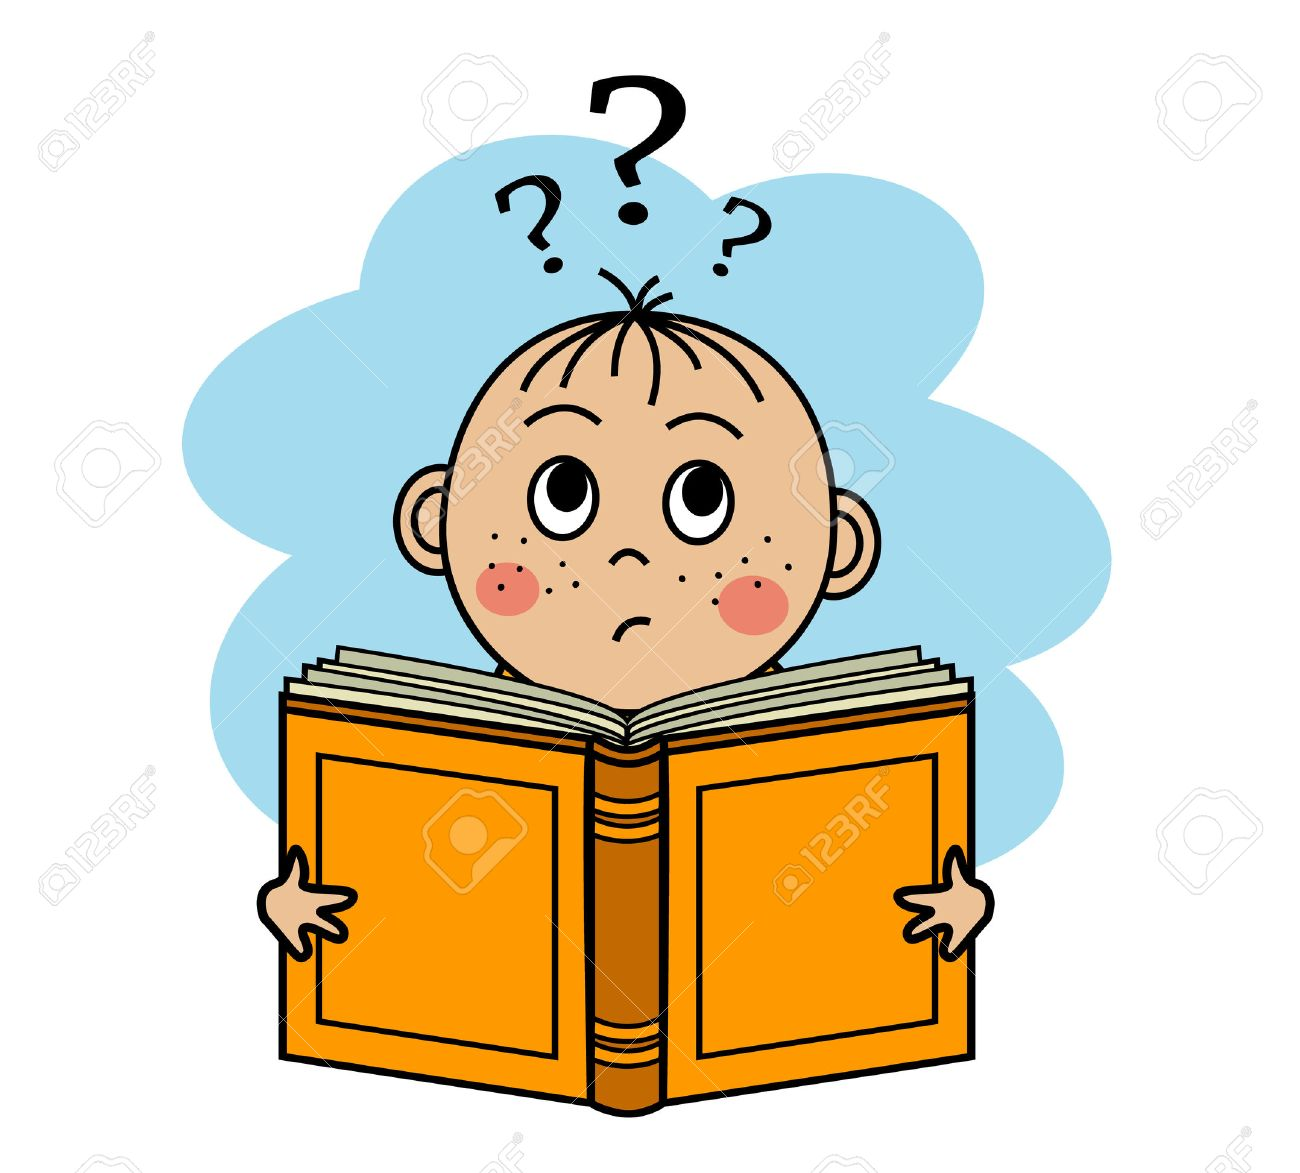 Image result for boy not understanding book clipart